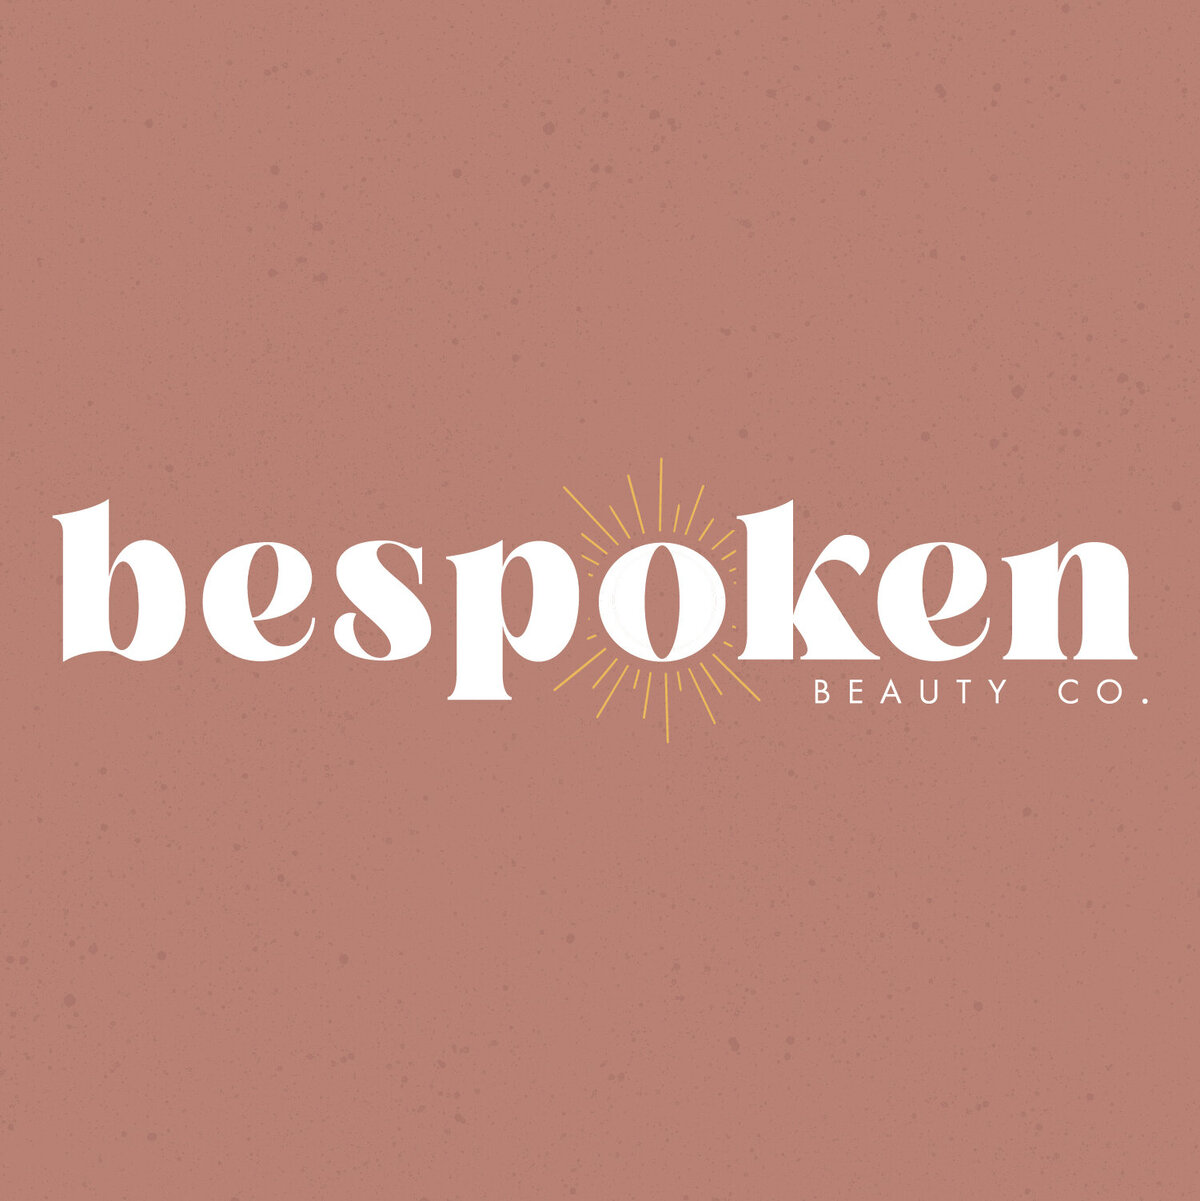 Instagram Feed-Bespoken Beauty-21